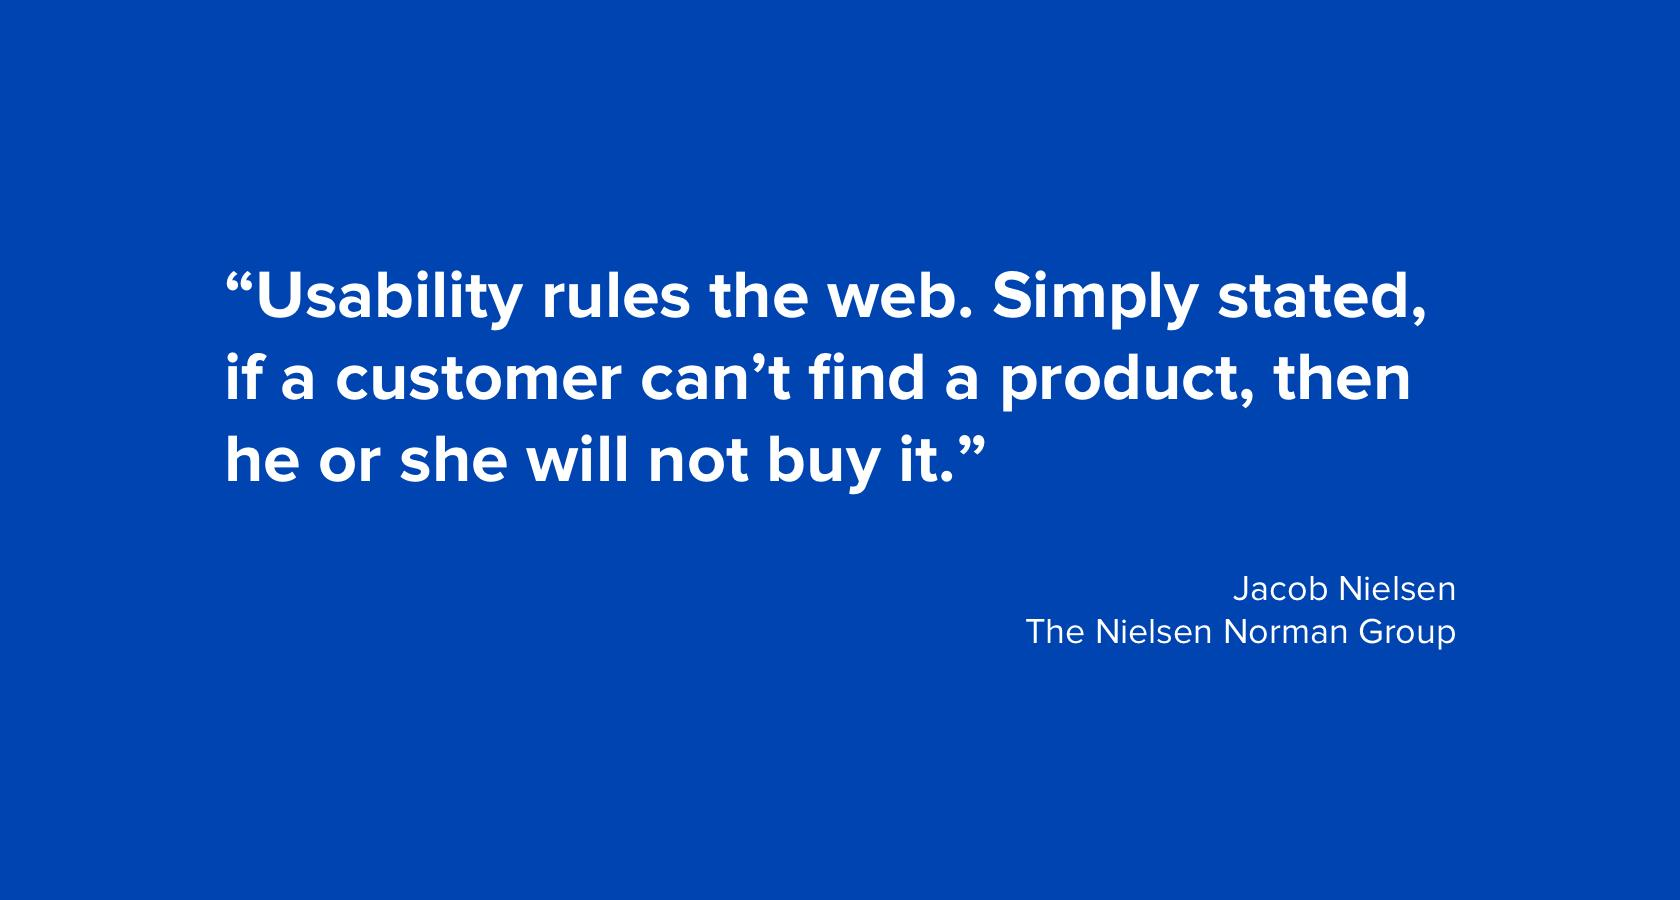 Quote by Jacob Nielsen